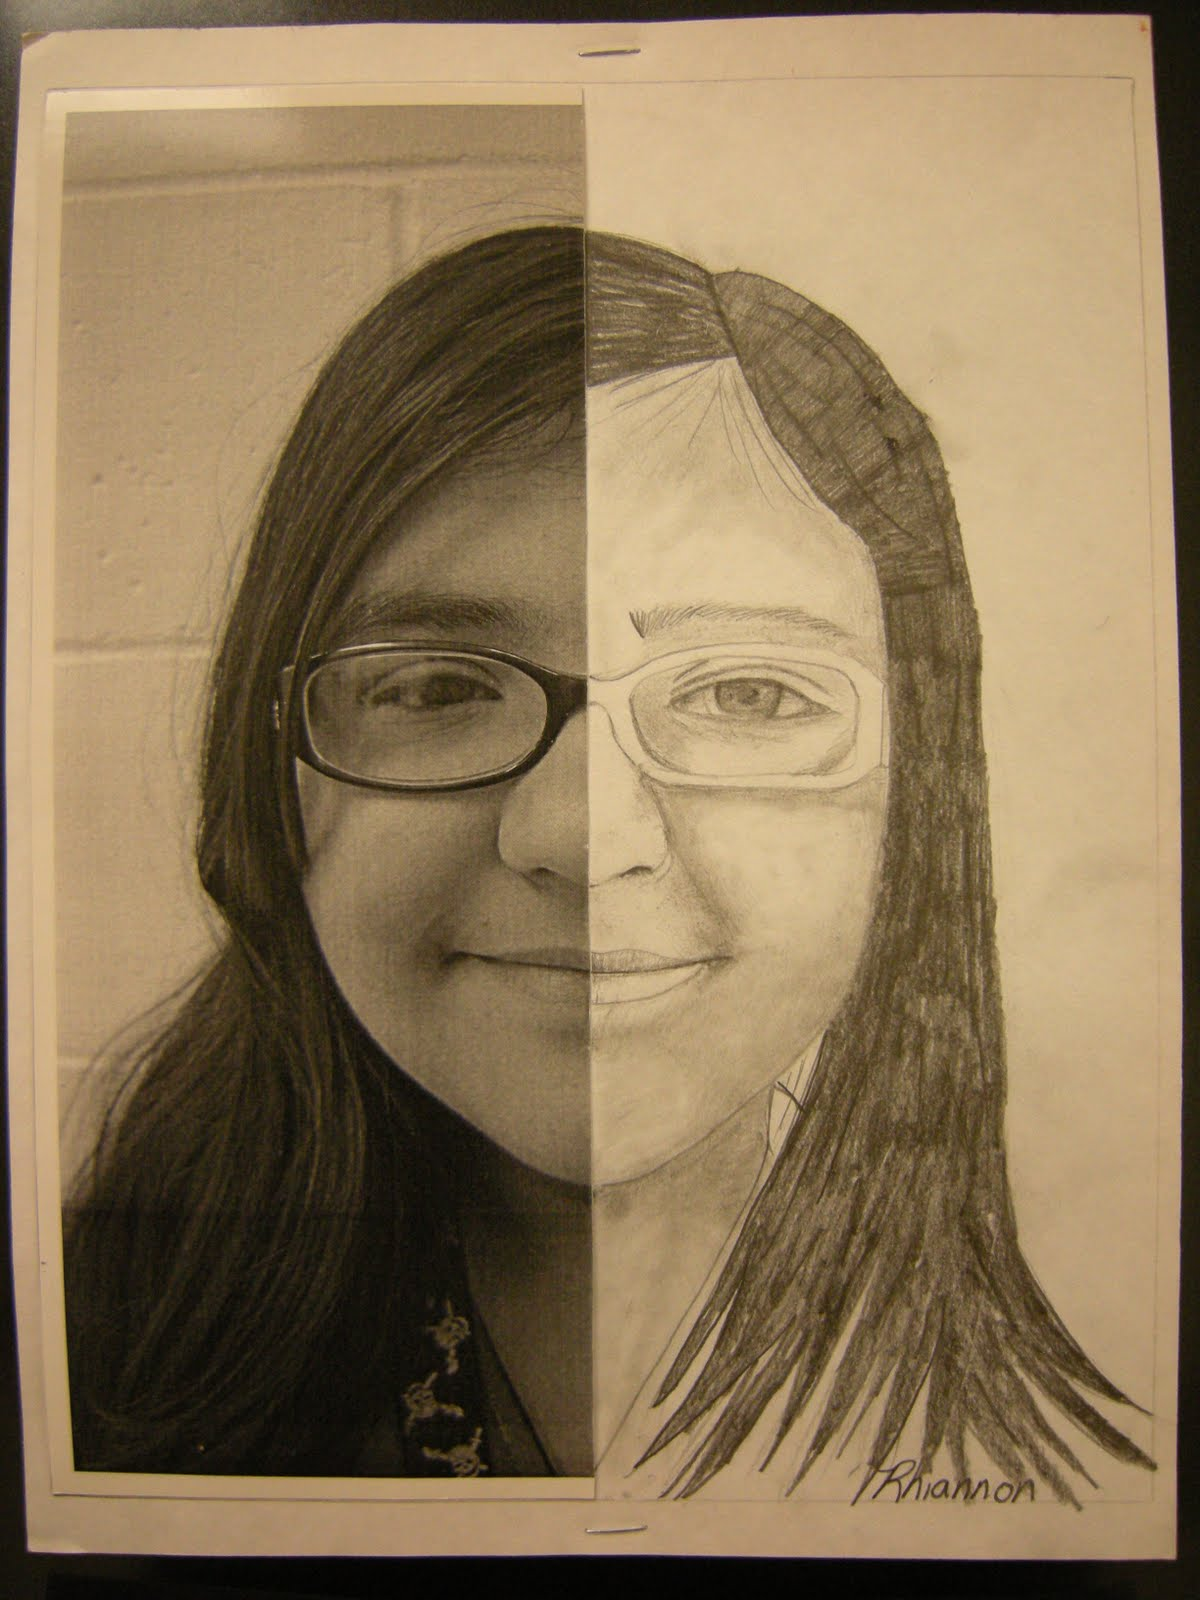 Tart Teaching Art With Attitude Pencil Symmetrical Self